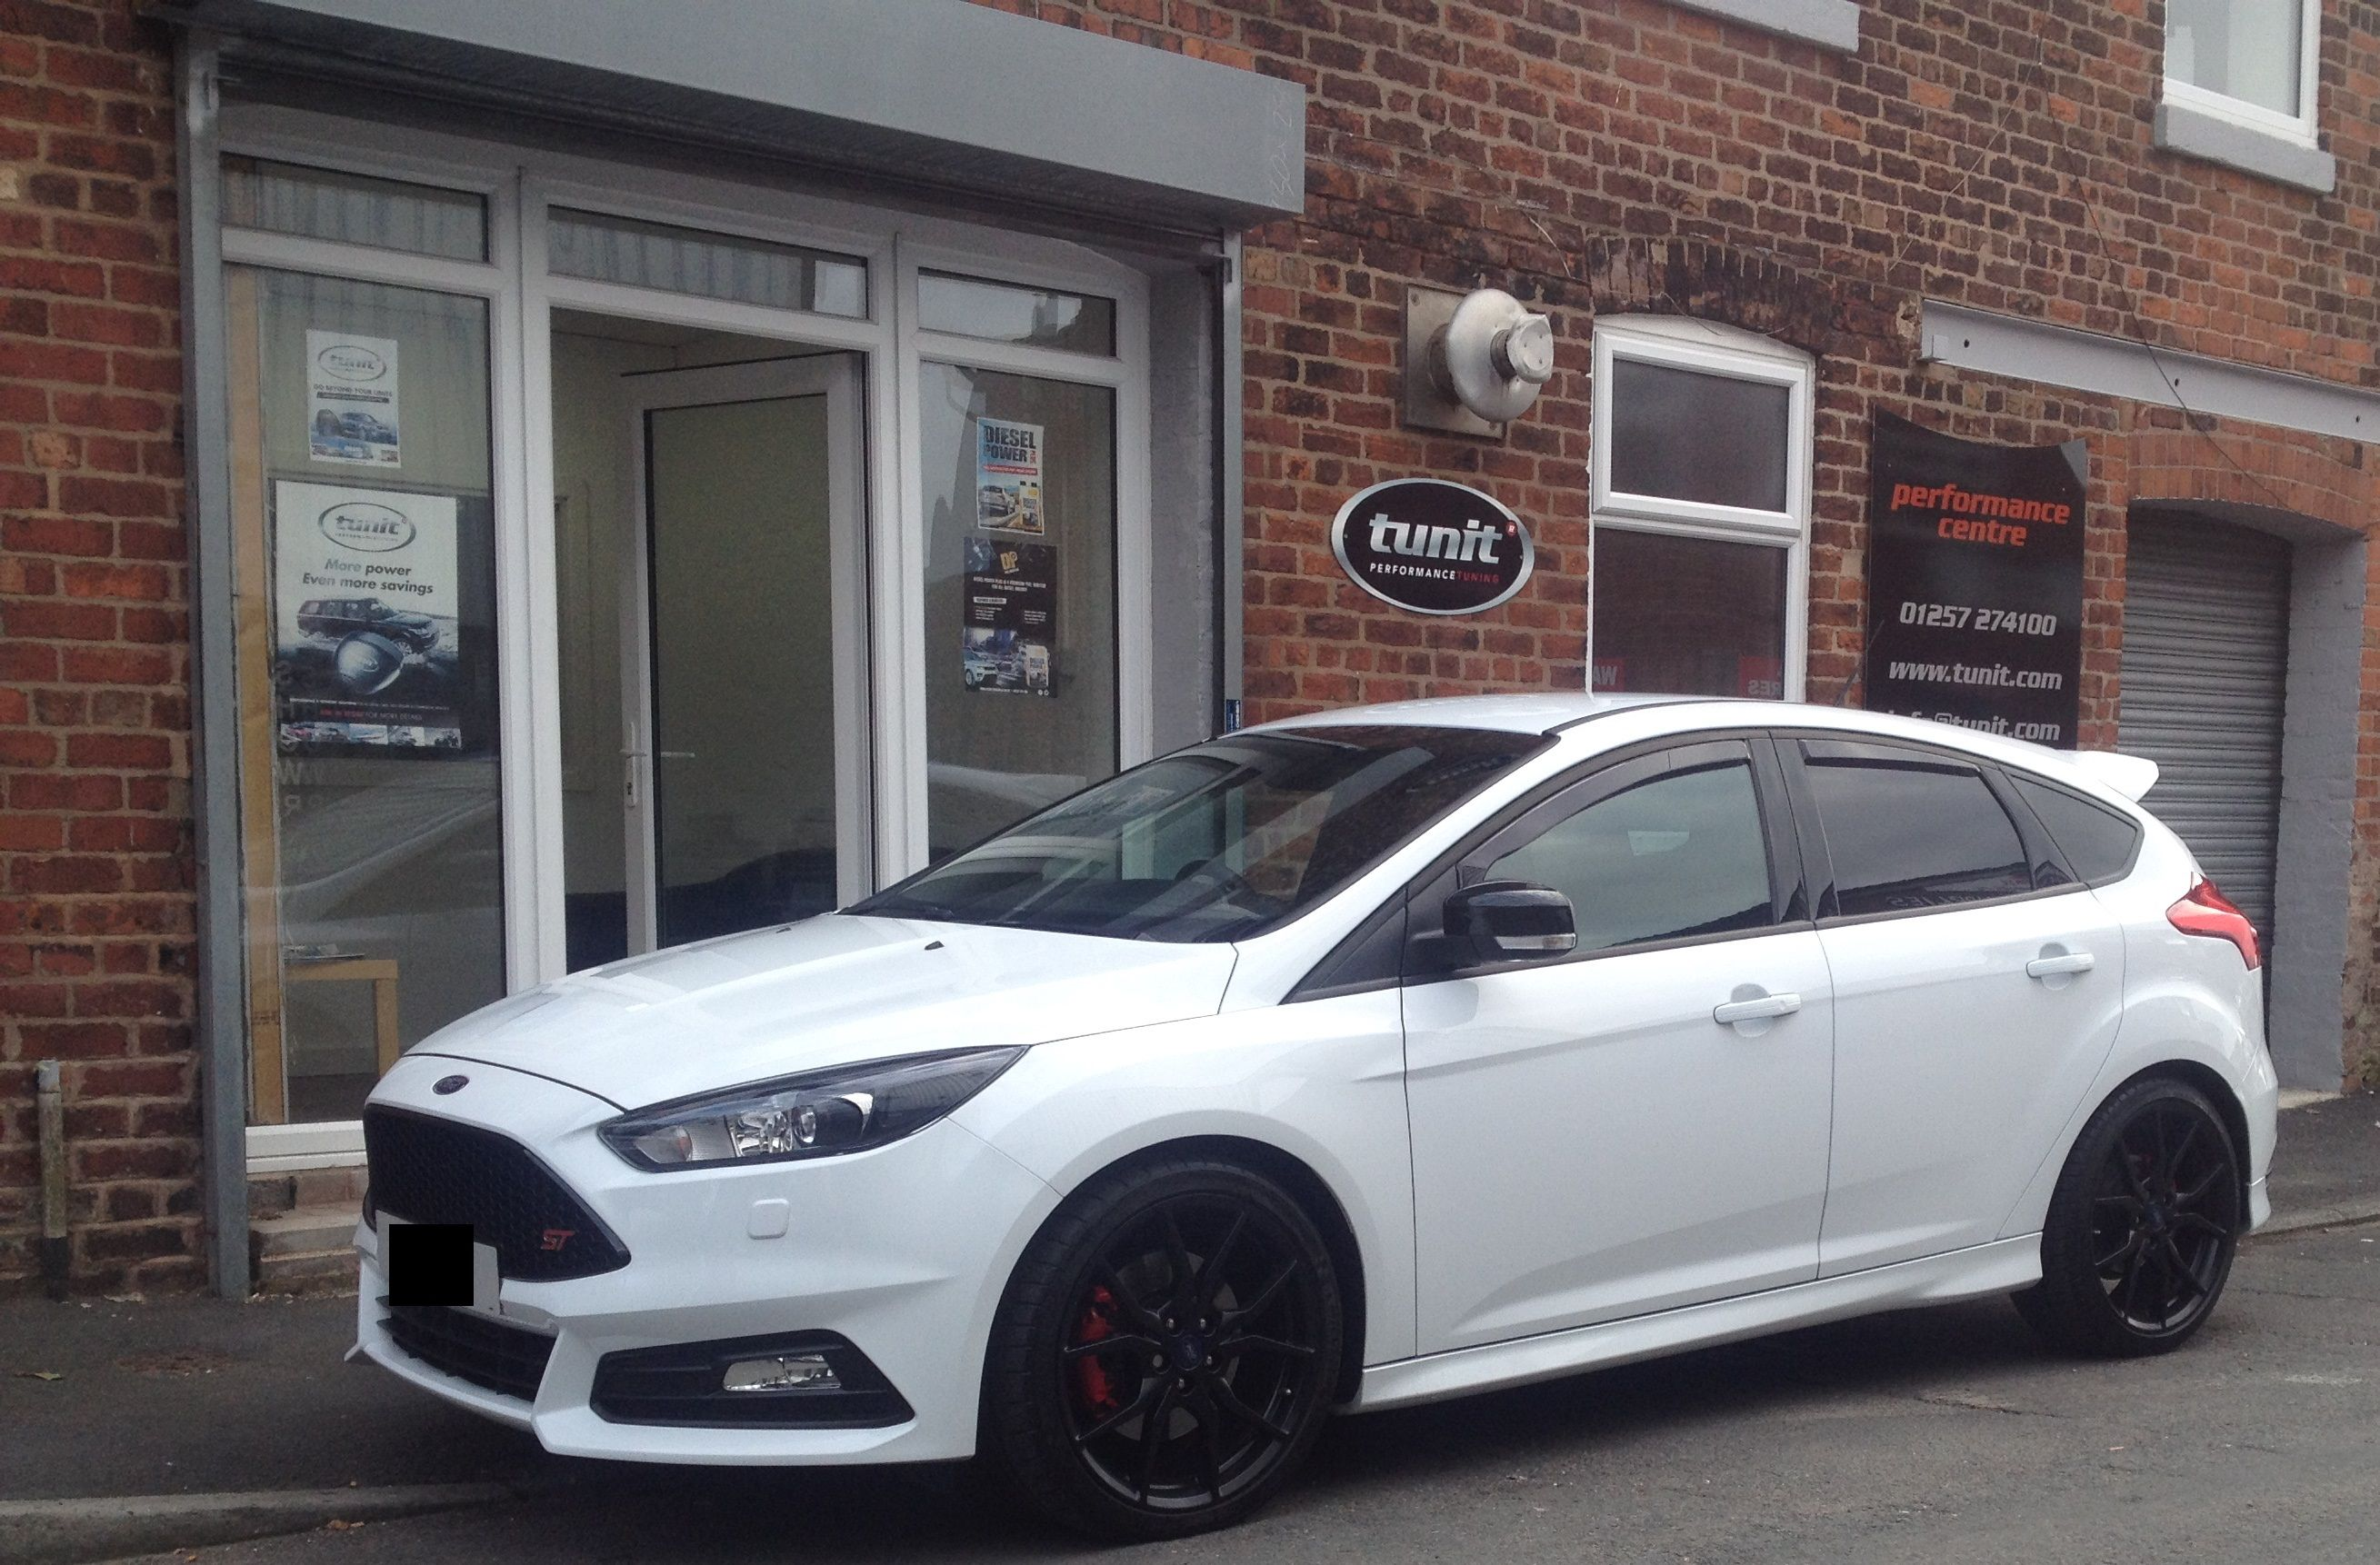 Earlier This Morning A Customer Brought His New Ford Focus St Iii 2 0l Eco Boost In To Have A Tunit Optimum Fitted Bh New Ford Focus Ford Focus St Ford Focus